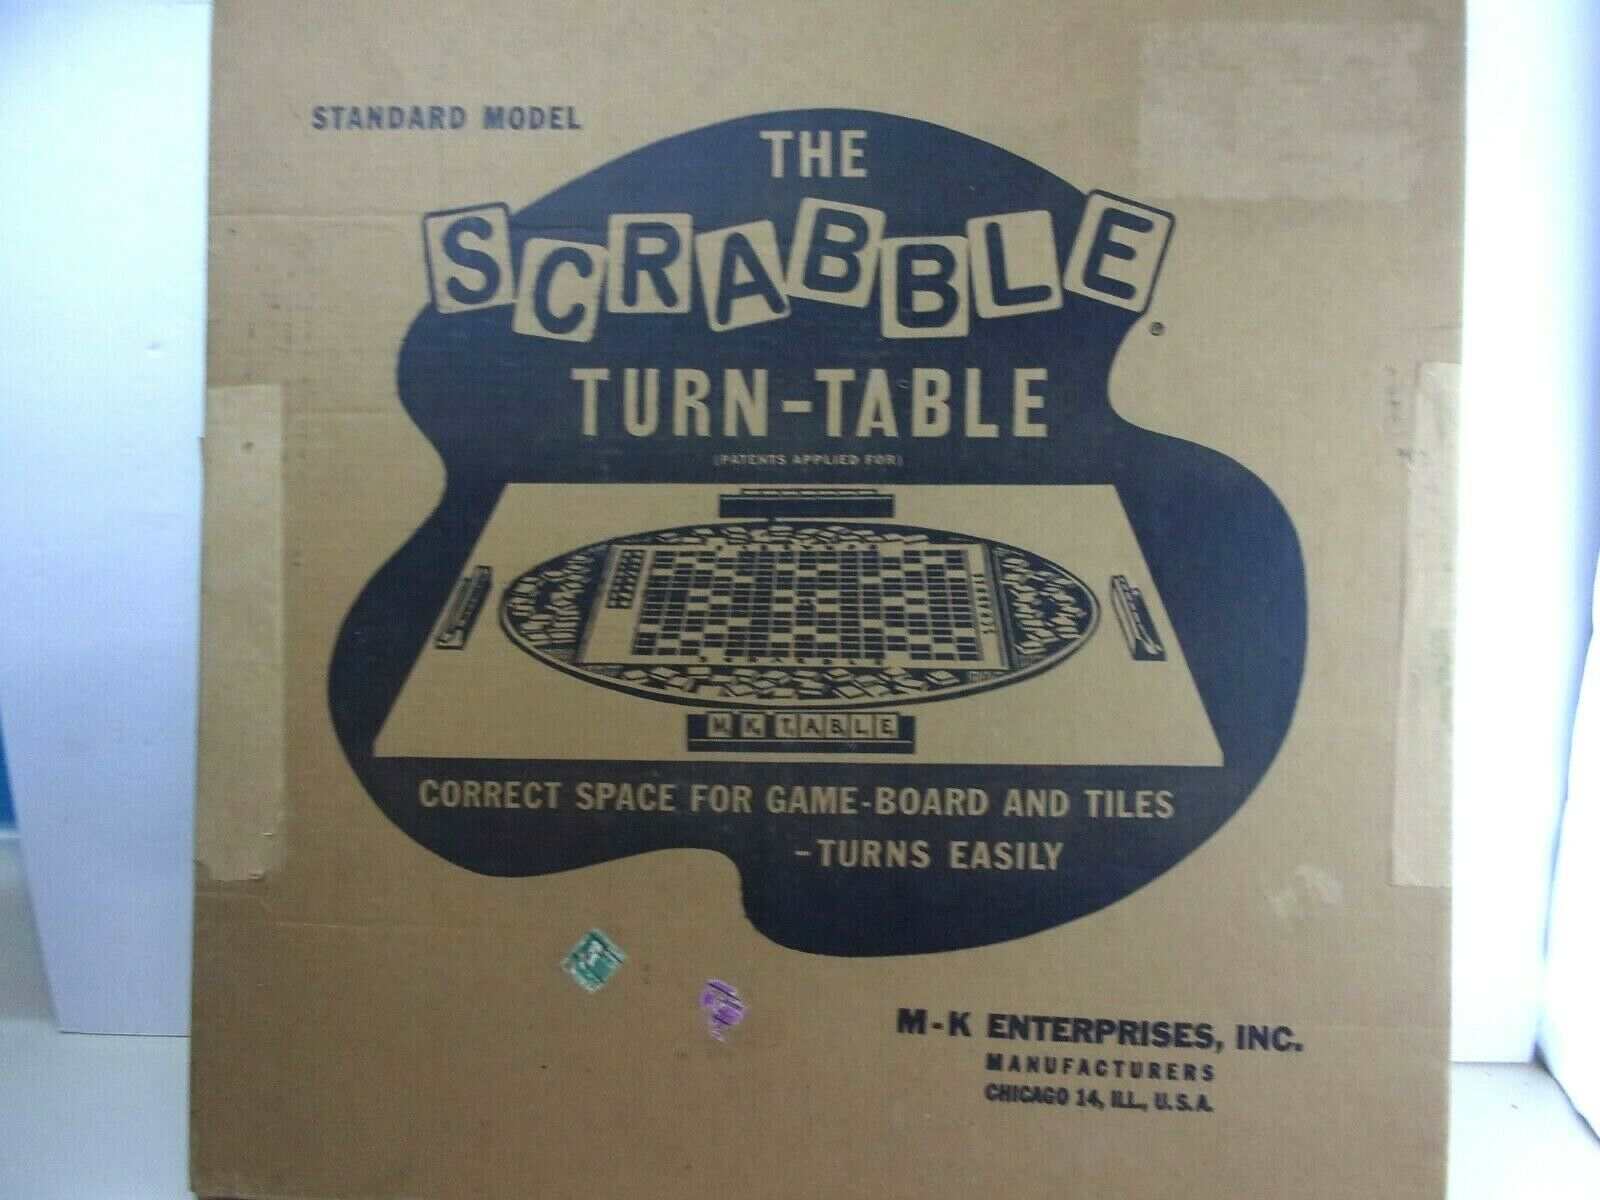 RARE early M-K Enterprises le Scrabble Turn-Table de brevets appliqués pour